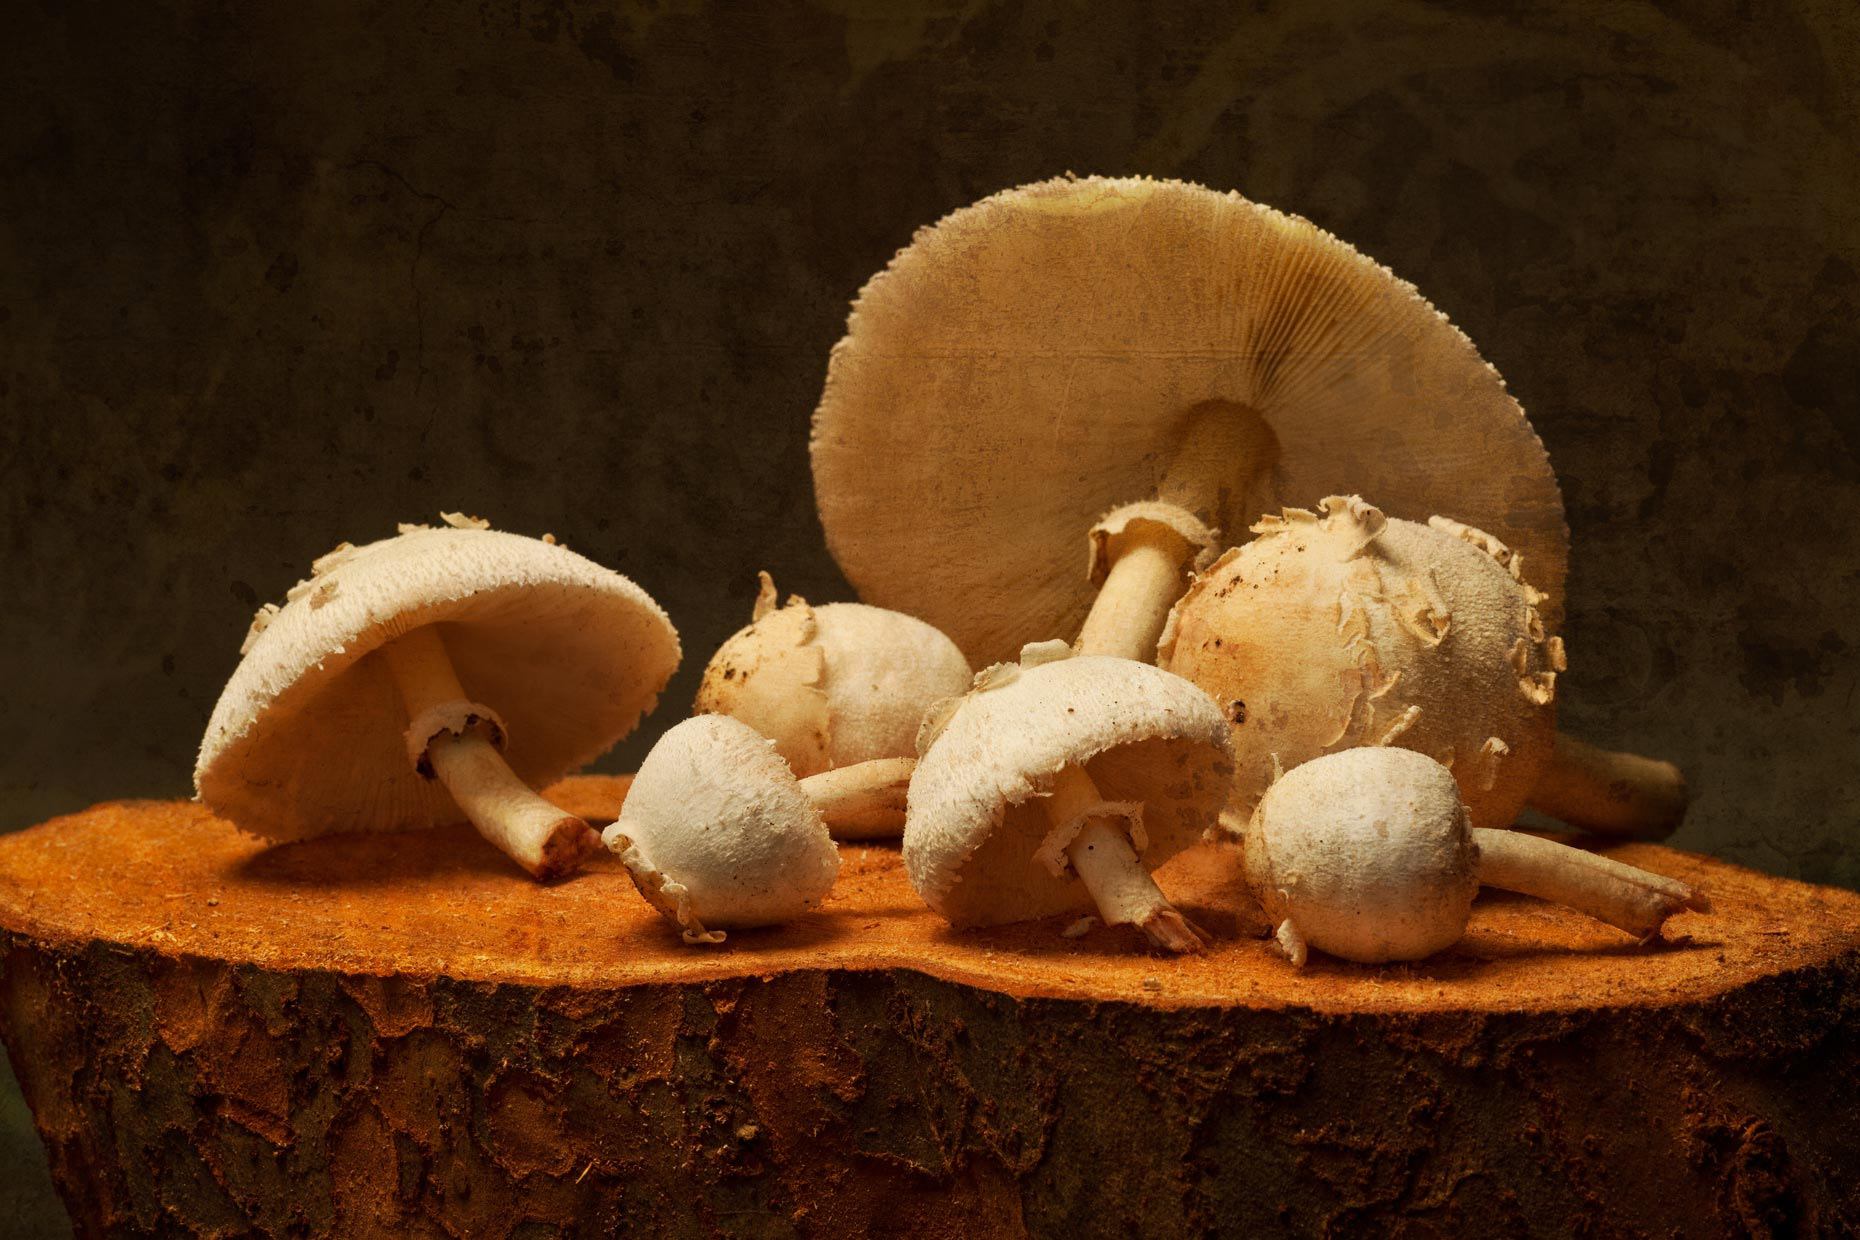 Food Photography | Mushrooms